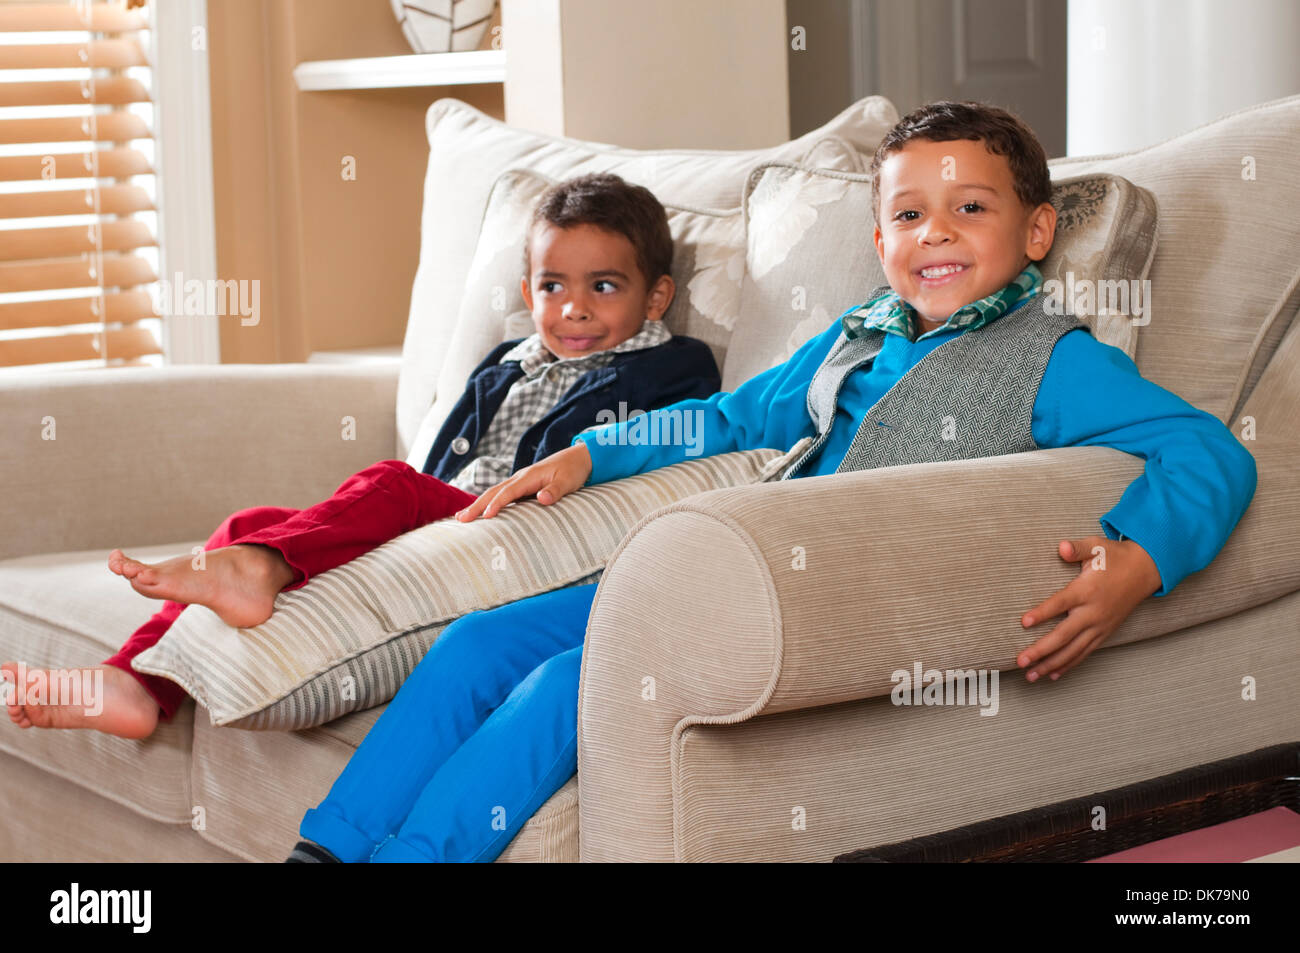 Two boys sitting on a sofa in a living room setting Stock Photo ...